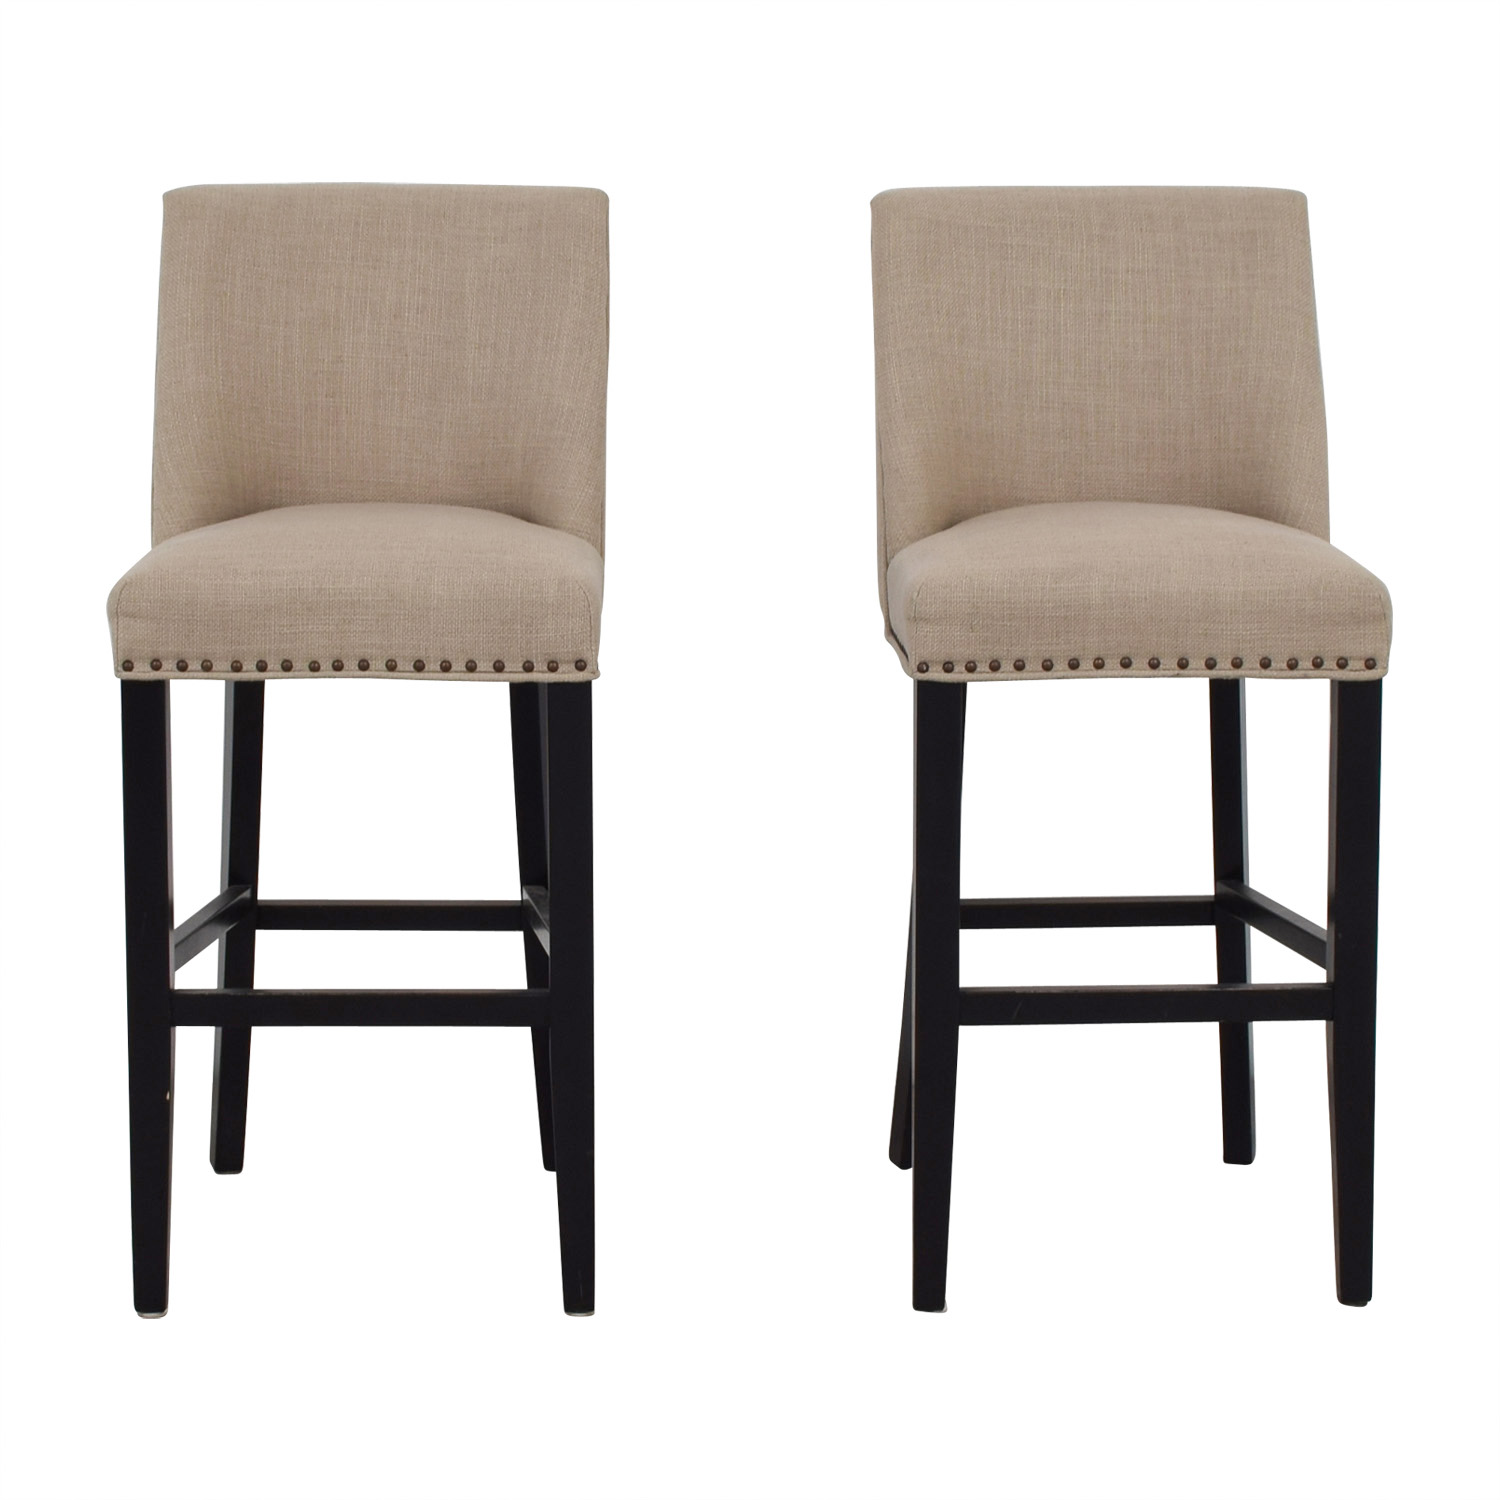 Surprising 90 Off Pier 1 Pier 1 Imports Grey Linen Stools Chairs Gmtry Best Dining Table And Chair Ideas Images Gmtryco